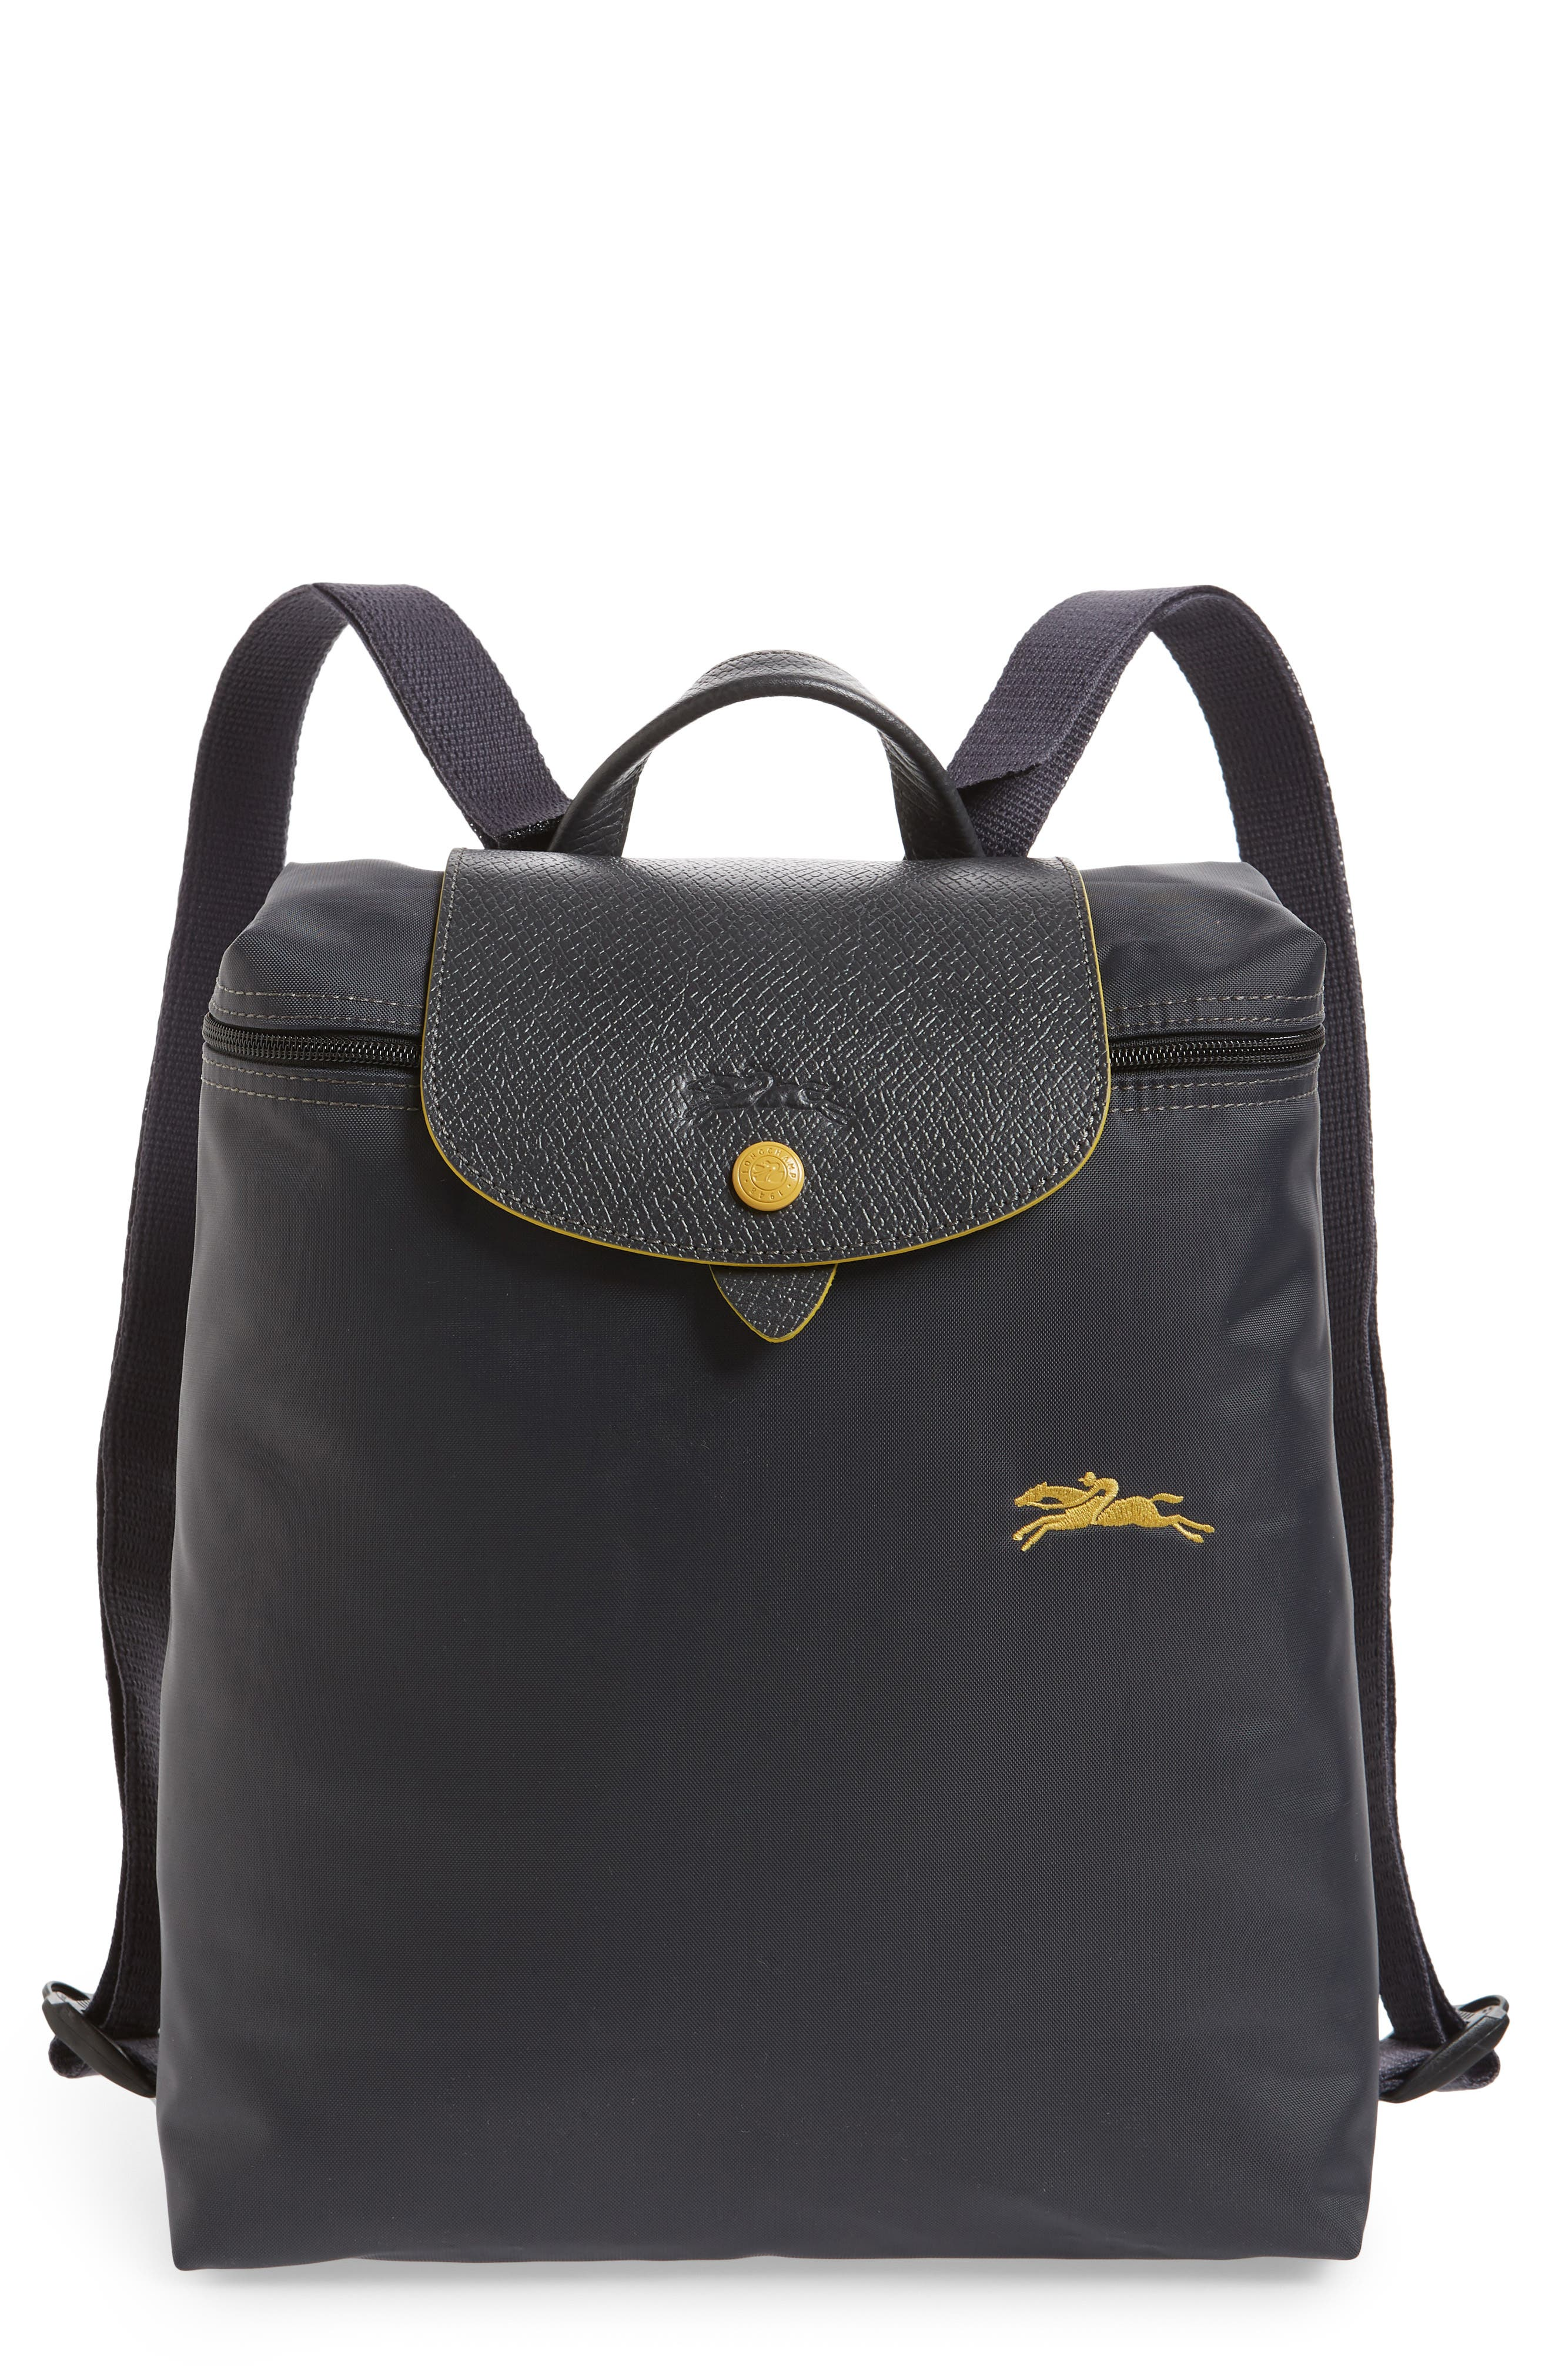 Le Pliage Club Backpack,                         Main,                         color, GUNMETAL